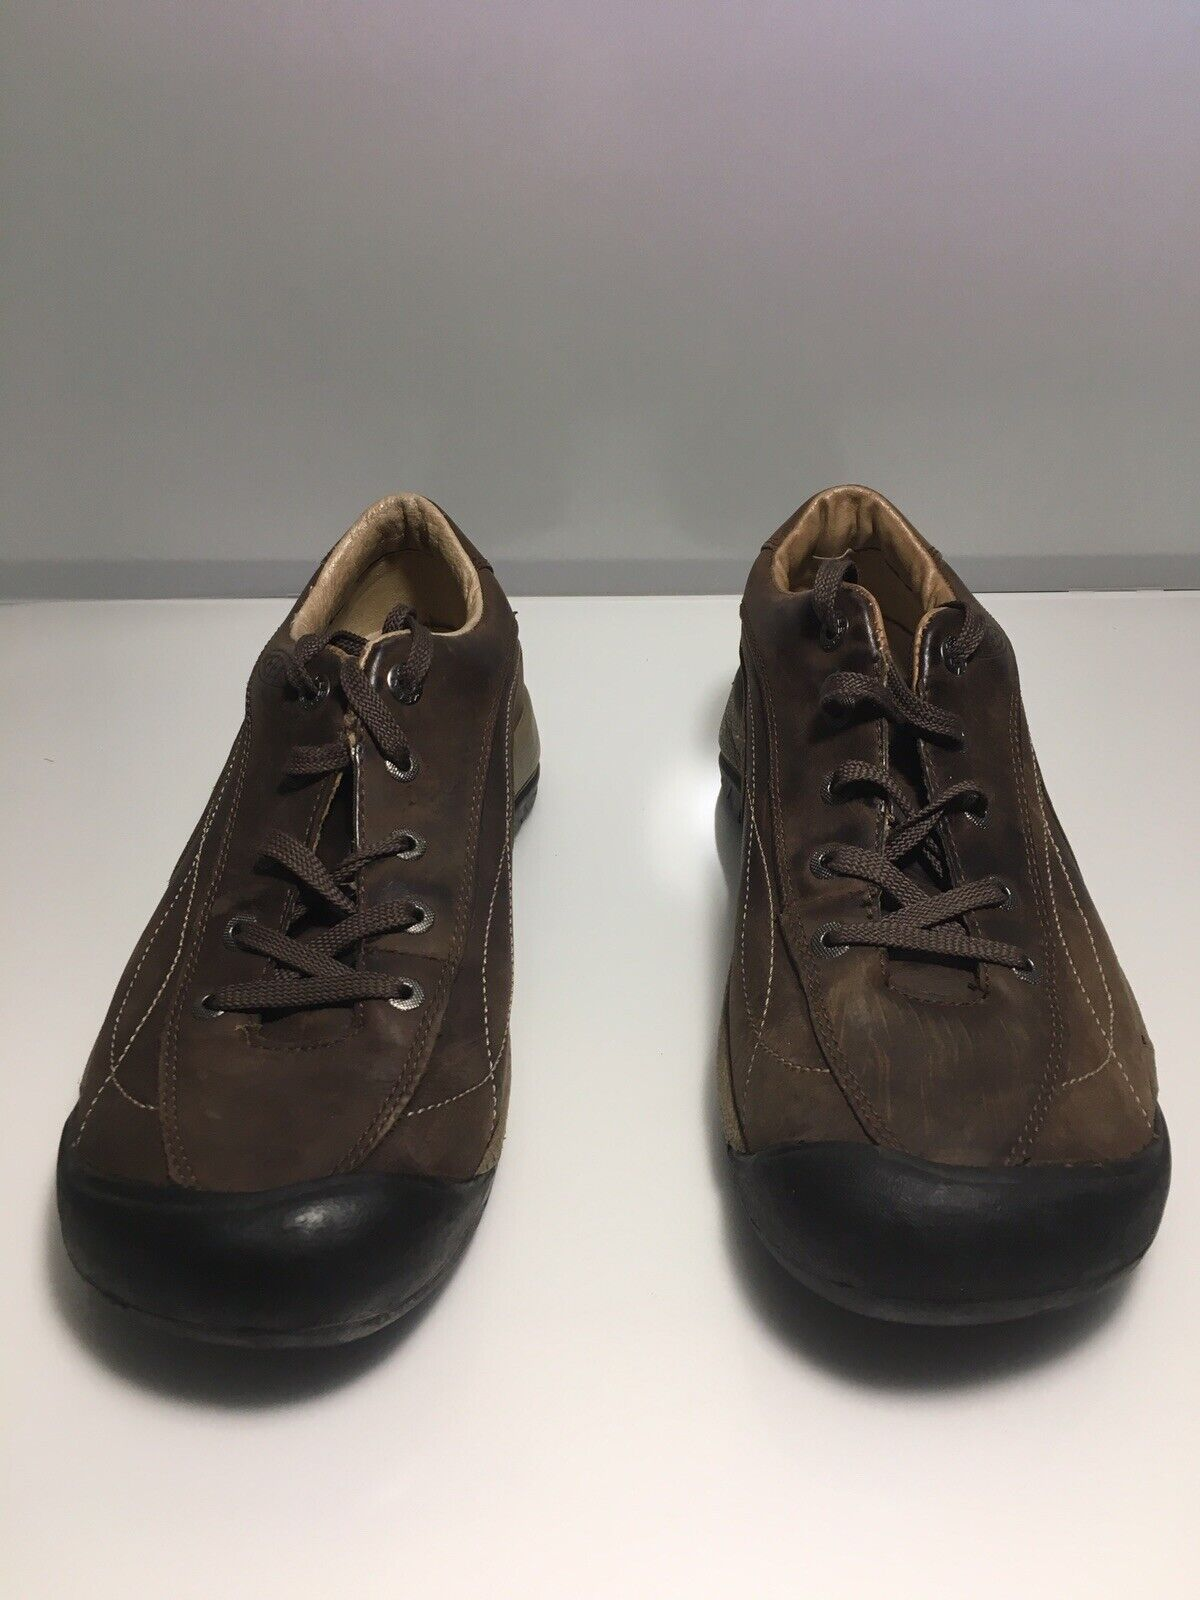 KEEN Casual Leather Hiking shoes Mens sz 9